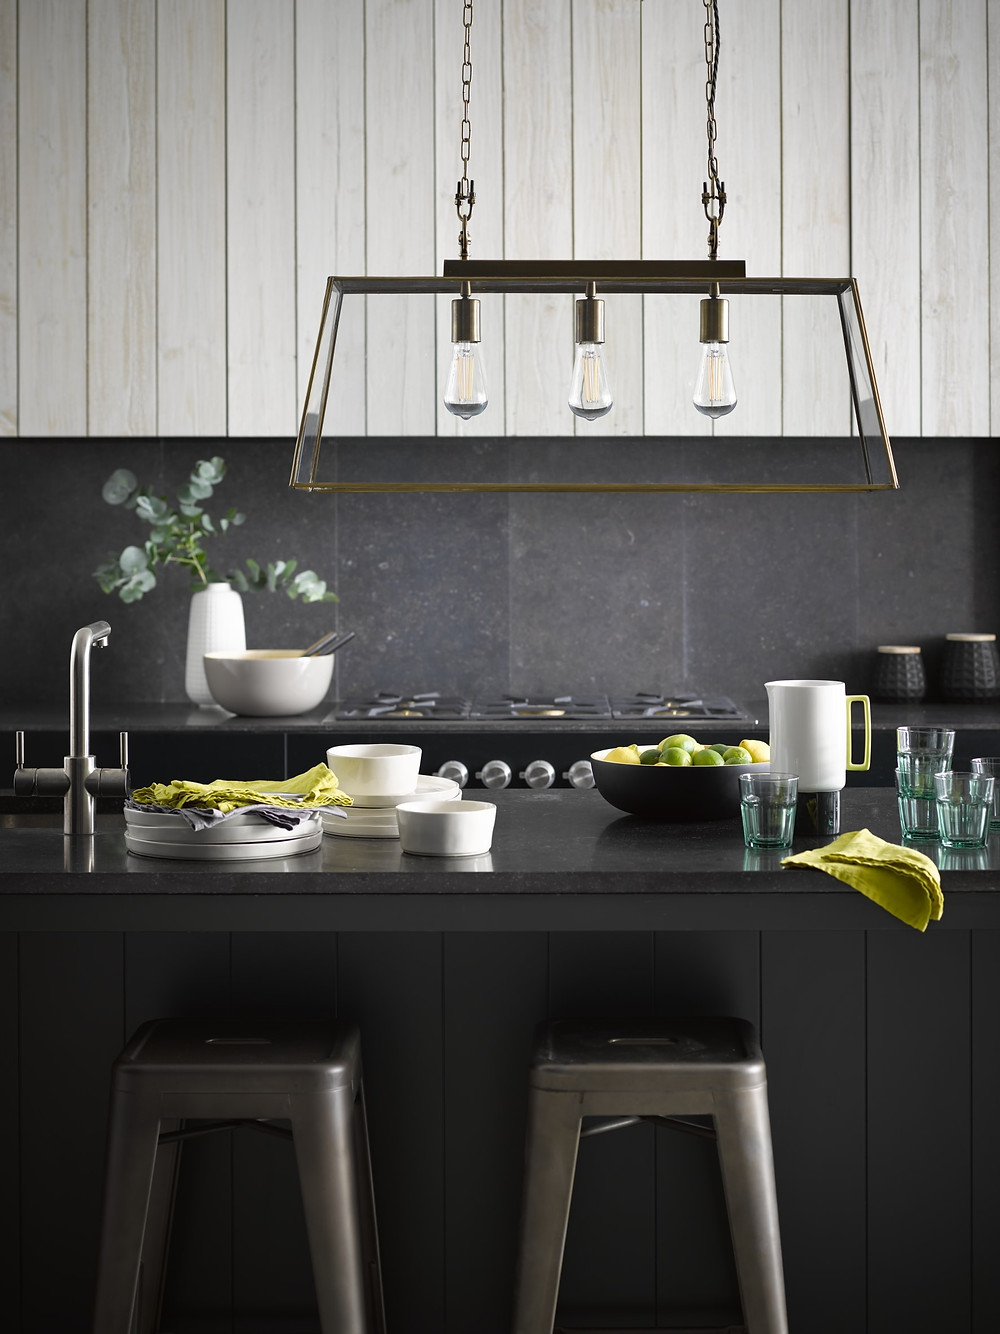 Pooky Luxor pendant light over kitchen island in a black kitchen